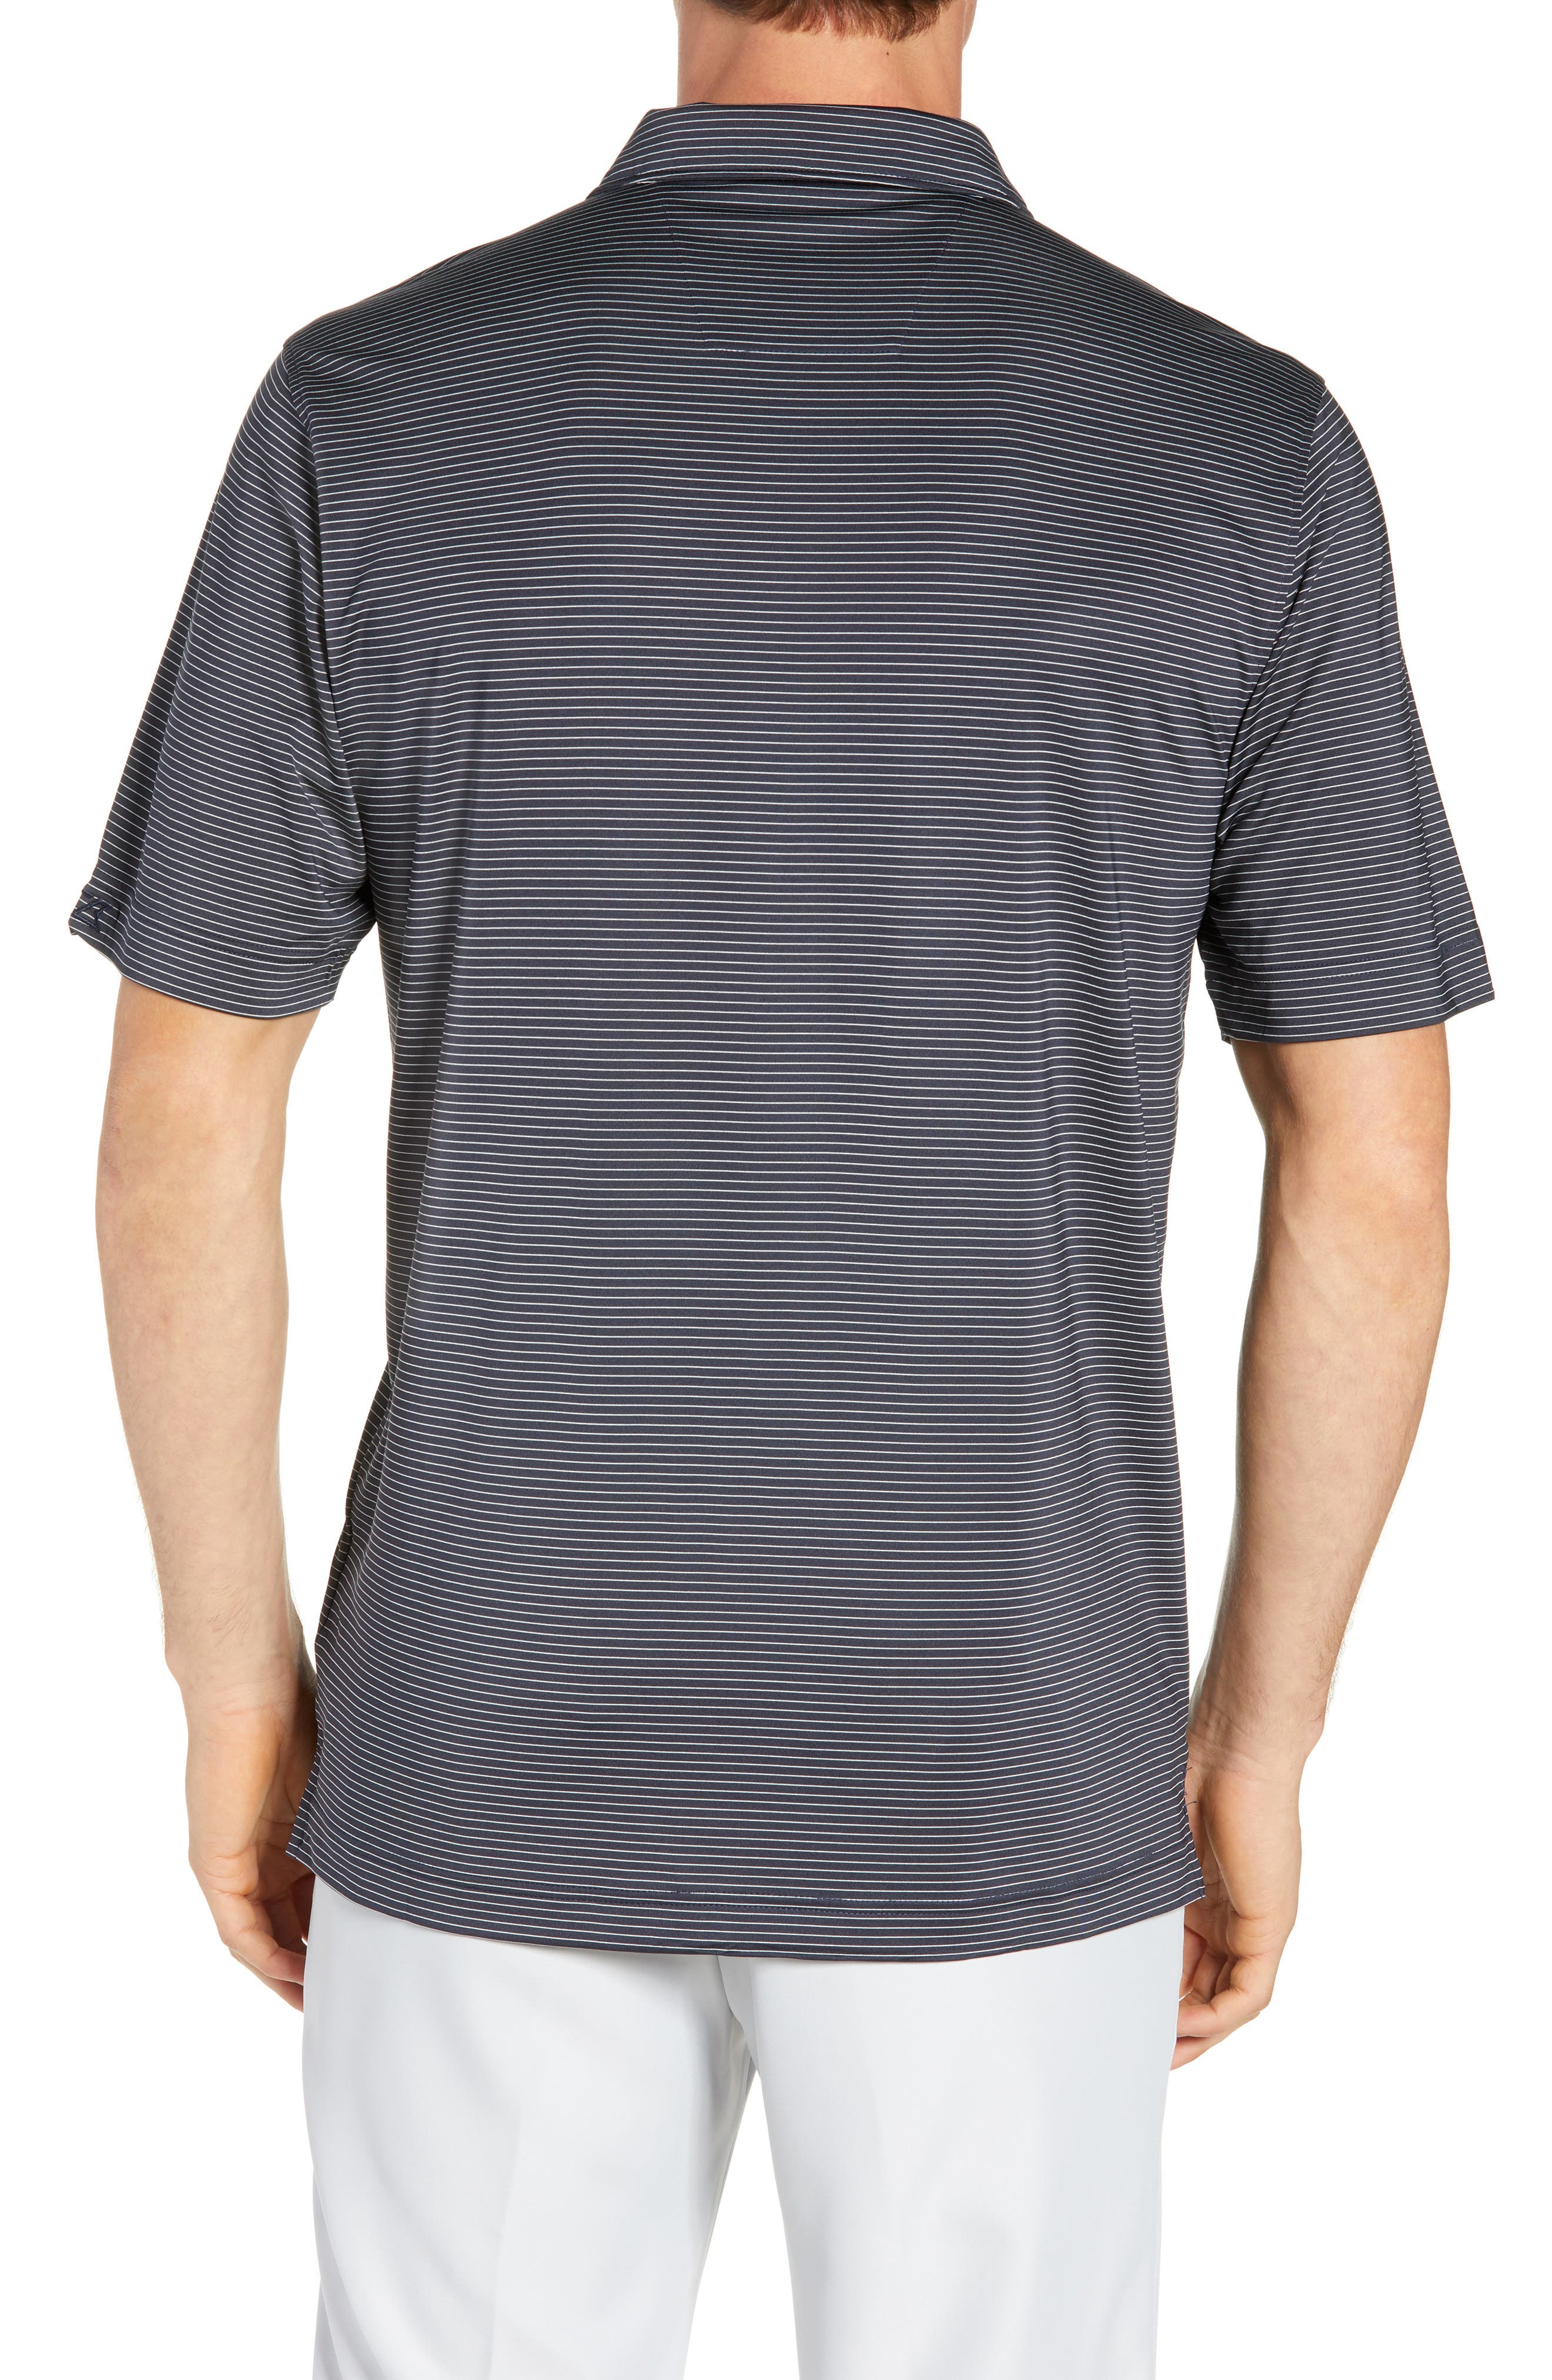 CUTTER & BUCK,                             Prevail Regular Fit Stripe Polo,                             Alternate thumbnail 2, color,                             LIBERTY NAVY